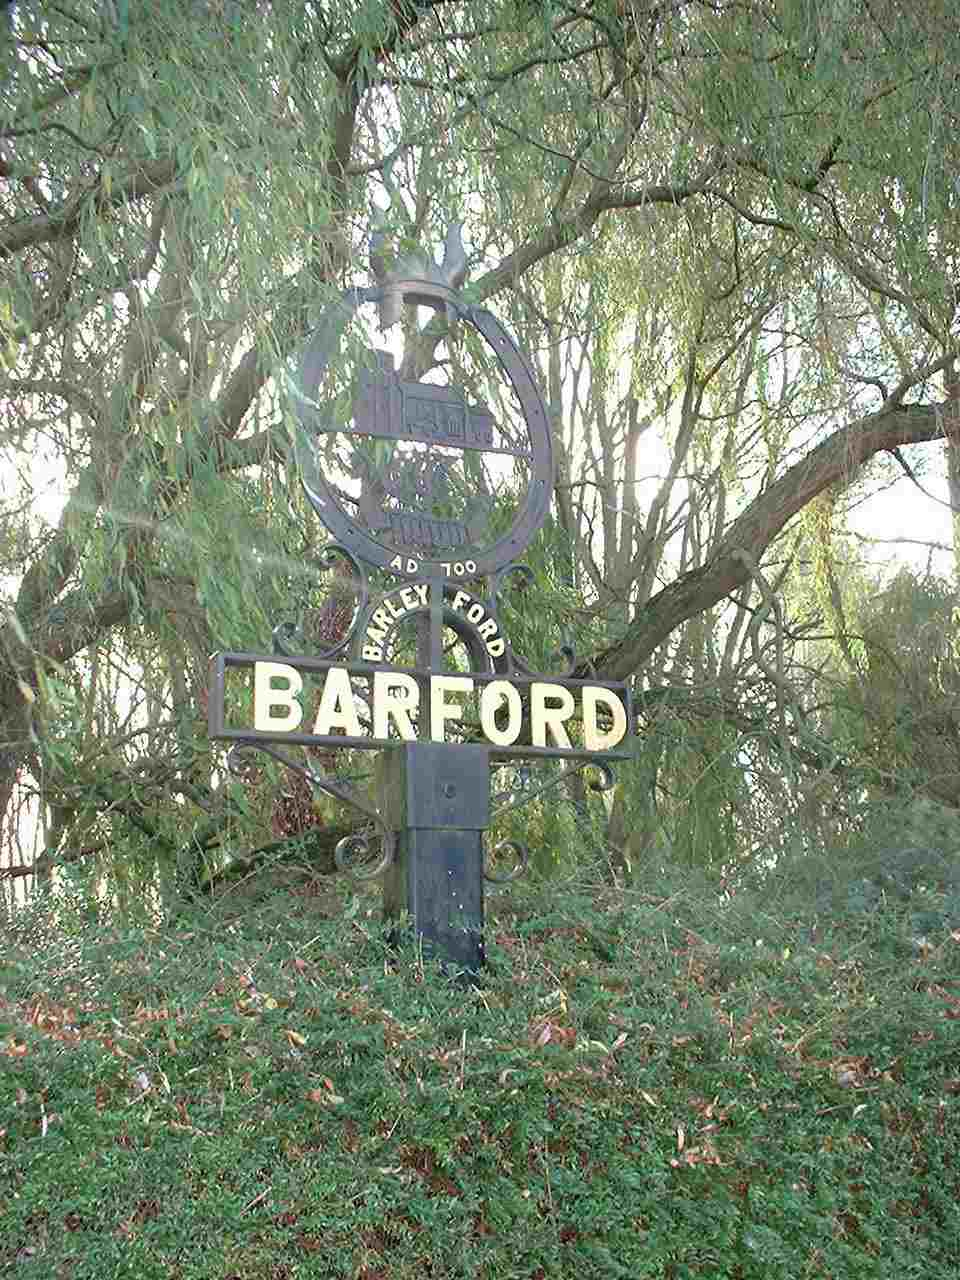 barford sign close up